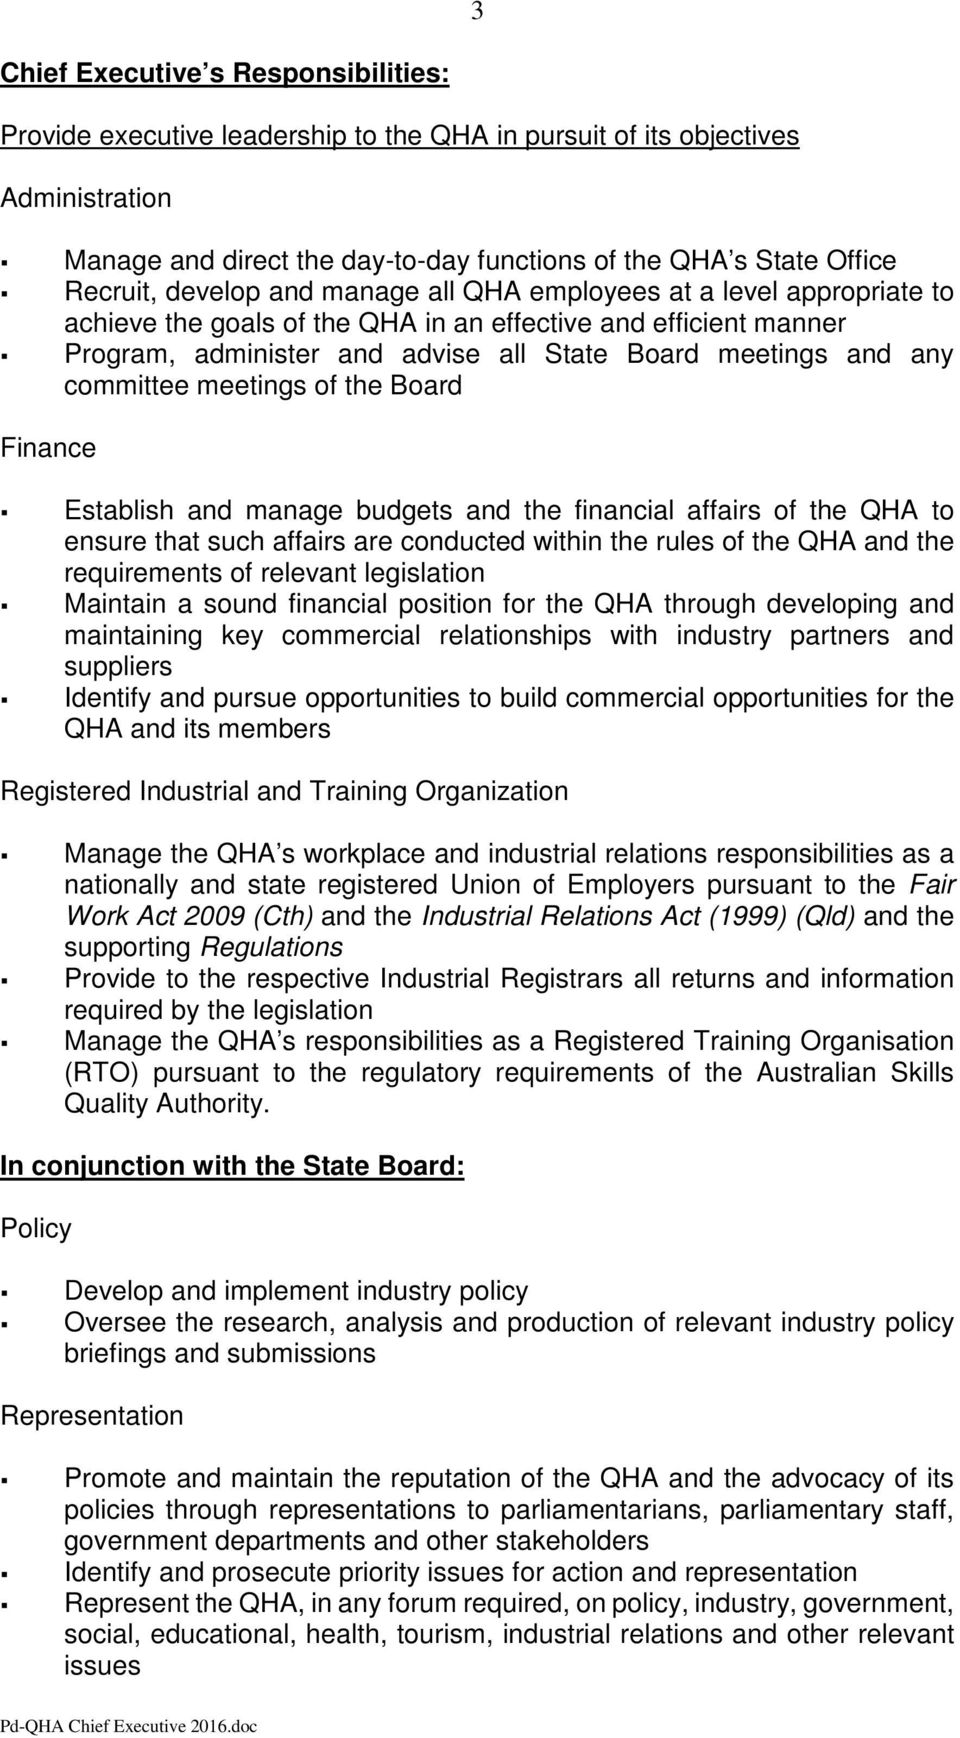 committee meetings of the Board Finance Establish and manage budgets and the financial affairs of the QHA to ensure that such affairs are conducted within the rules of the QHA and the requirements of